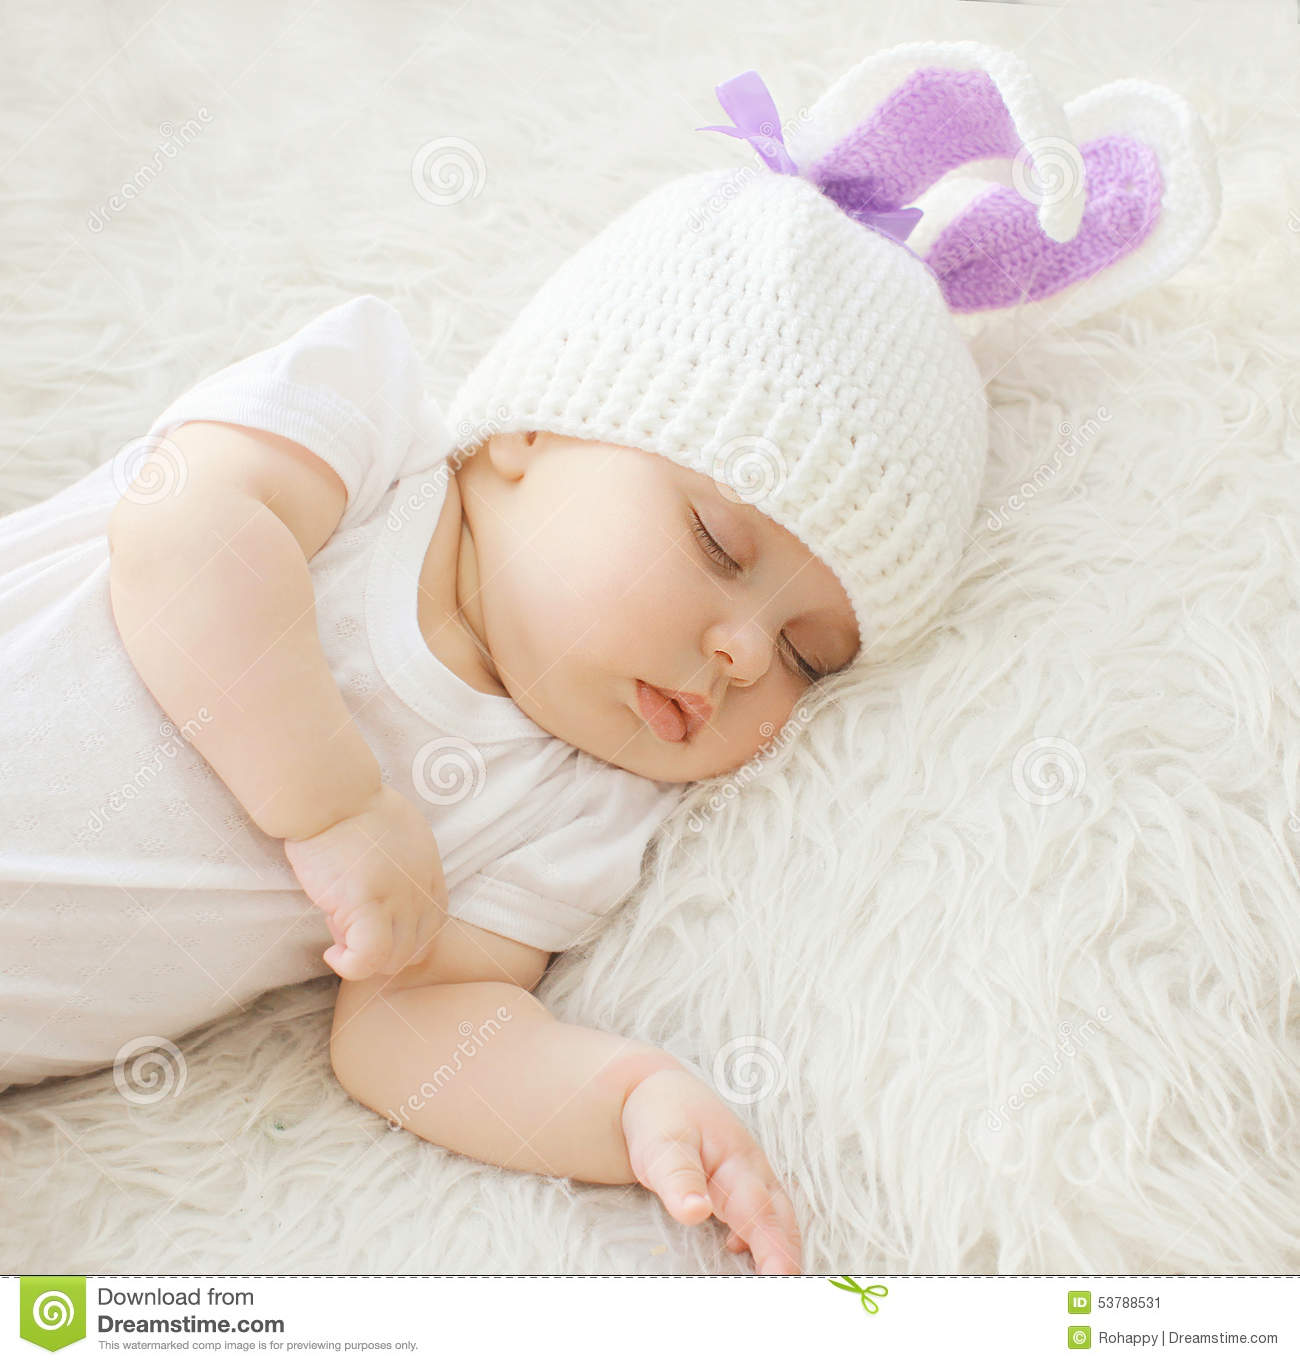 Sweet Baby Sleeping At Home On The Bed Stock Image Image Of Home Development 53788531